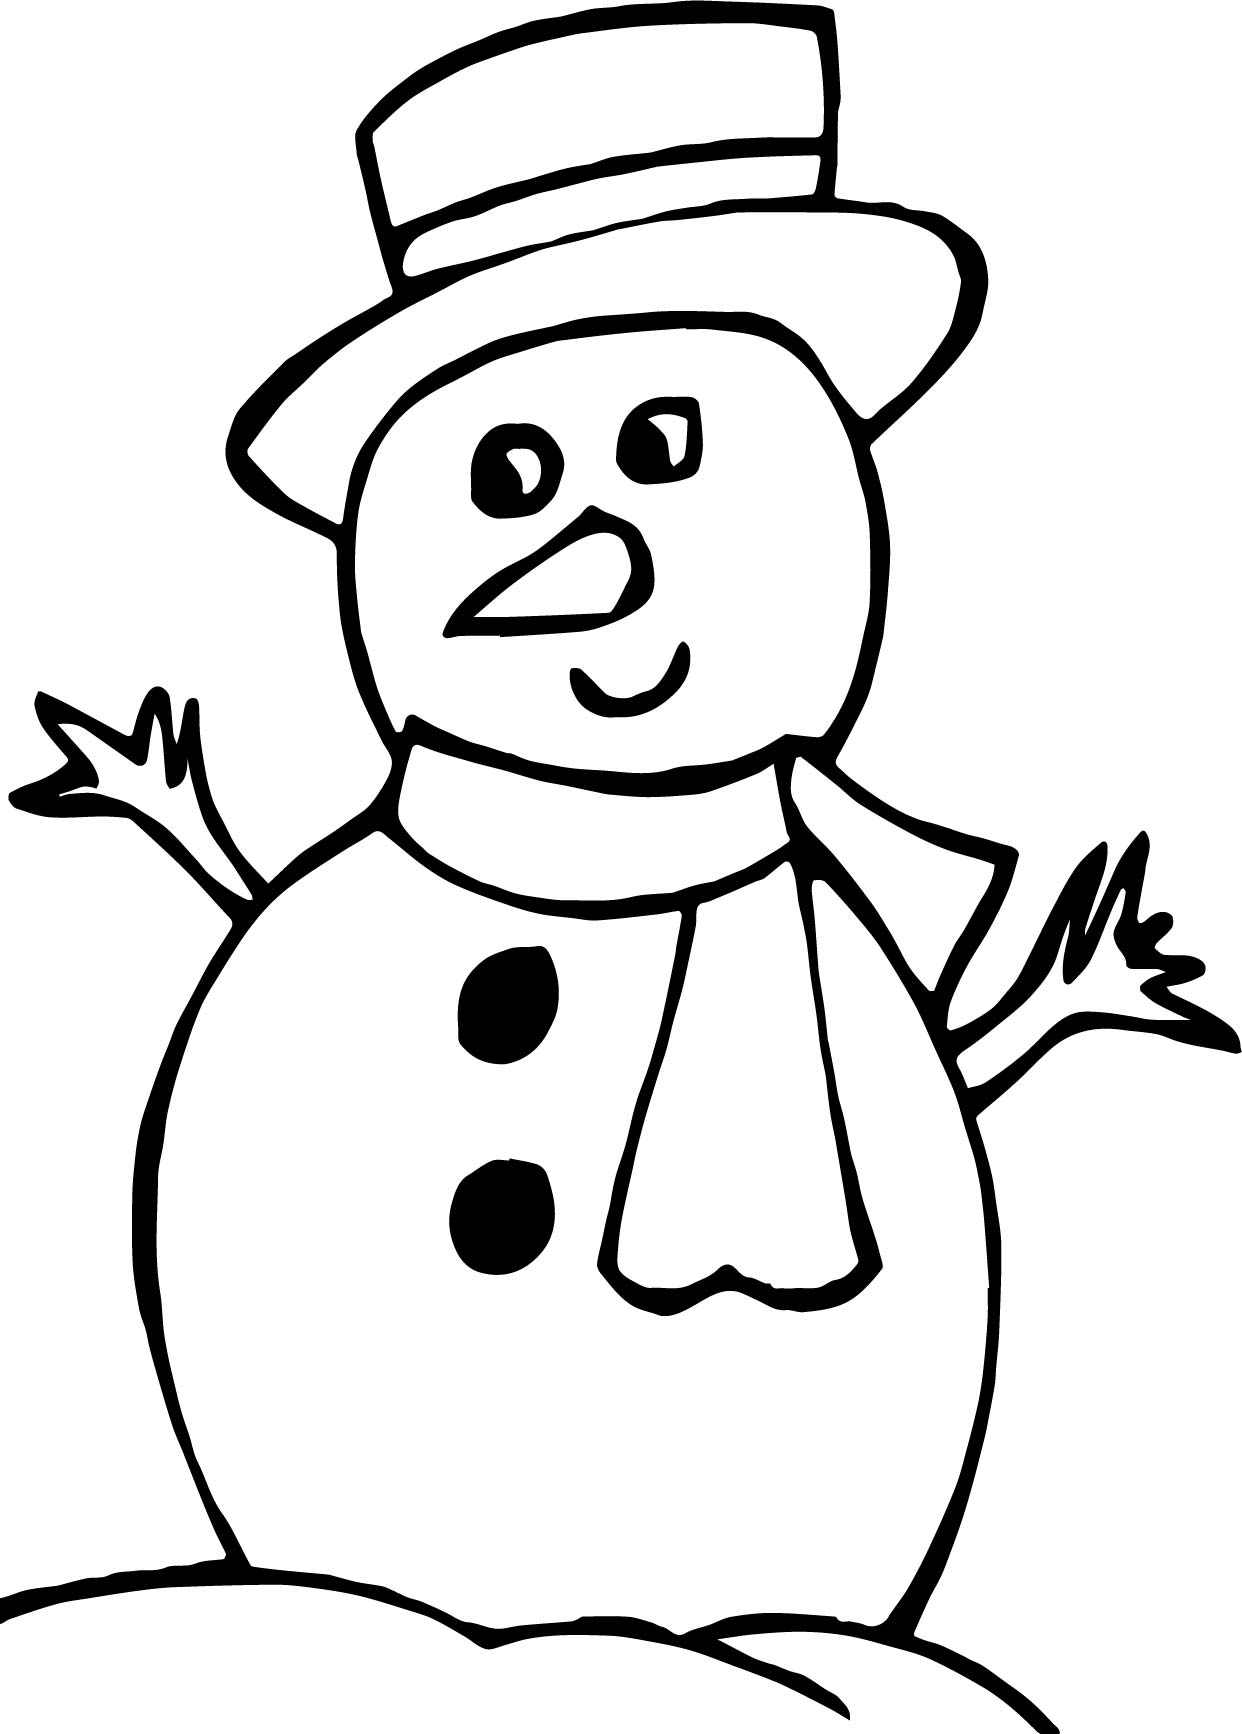 snowman coloring sheet mr snowman is very happy for christmas coloring page sheet snowman coloring